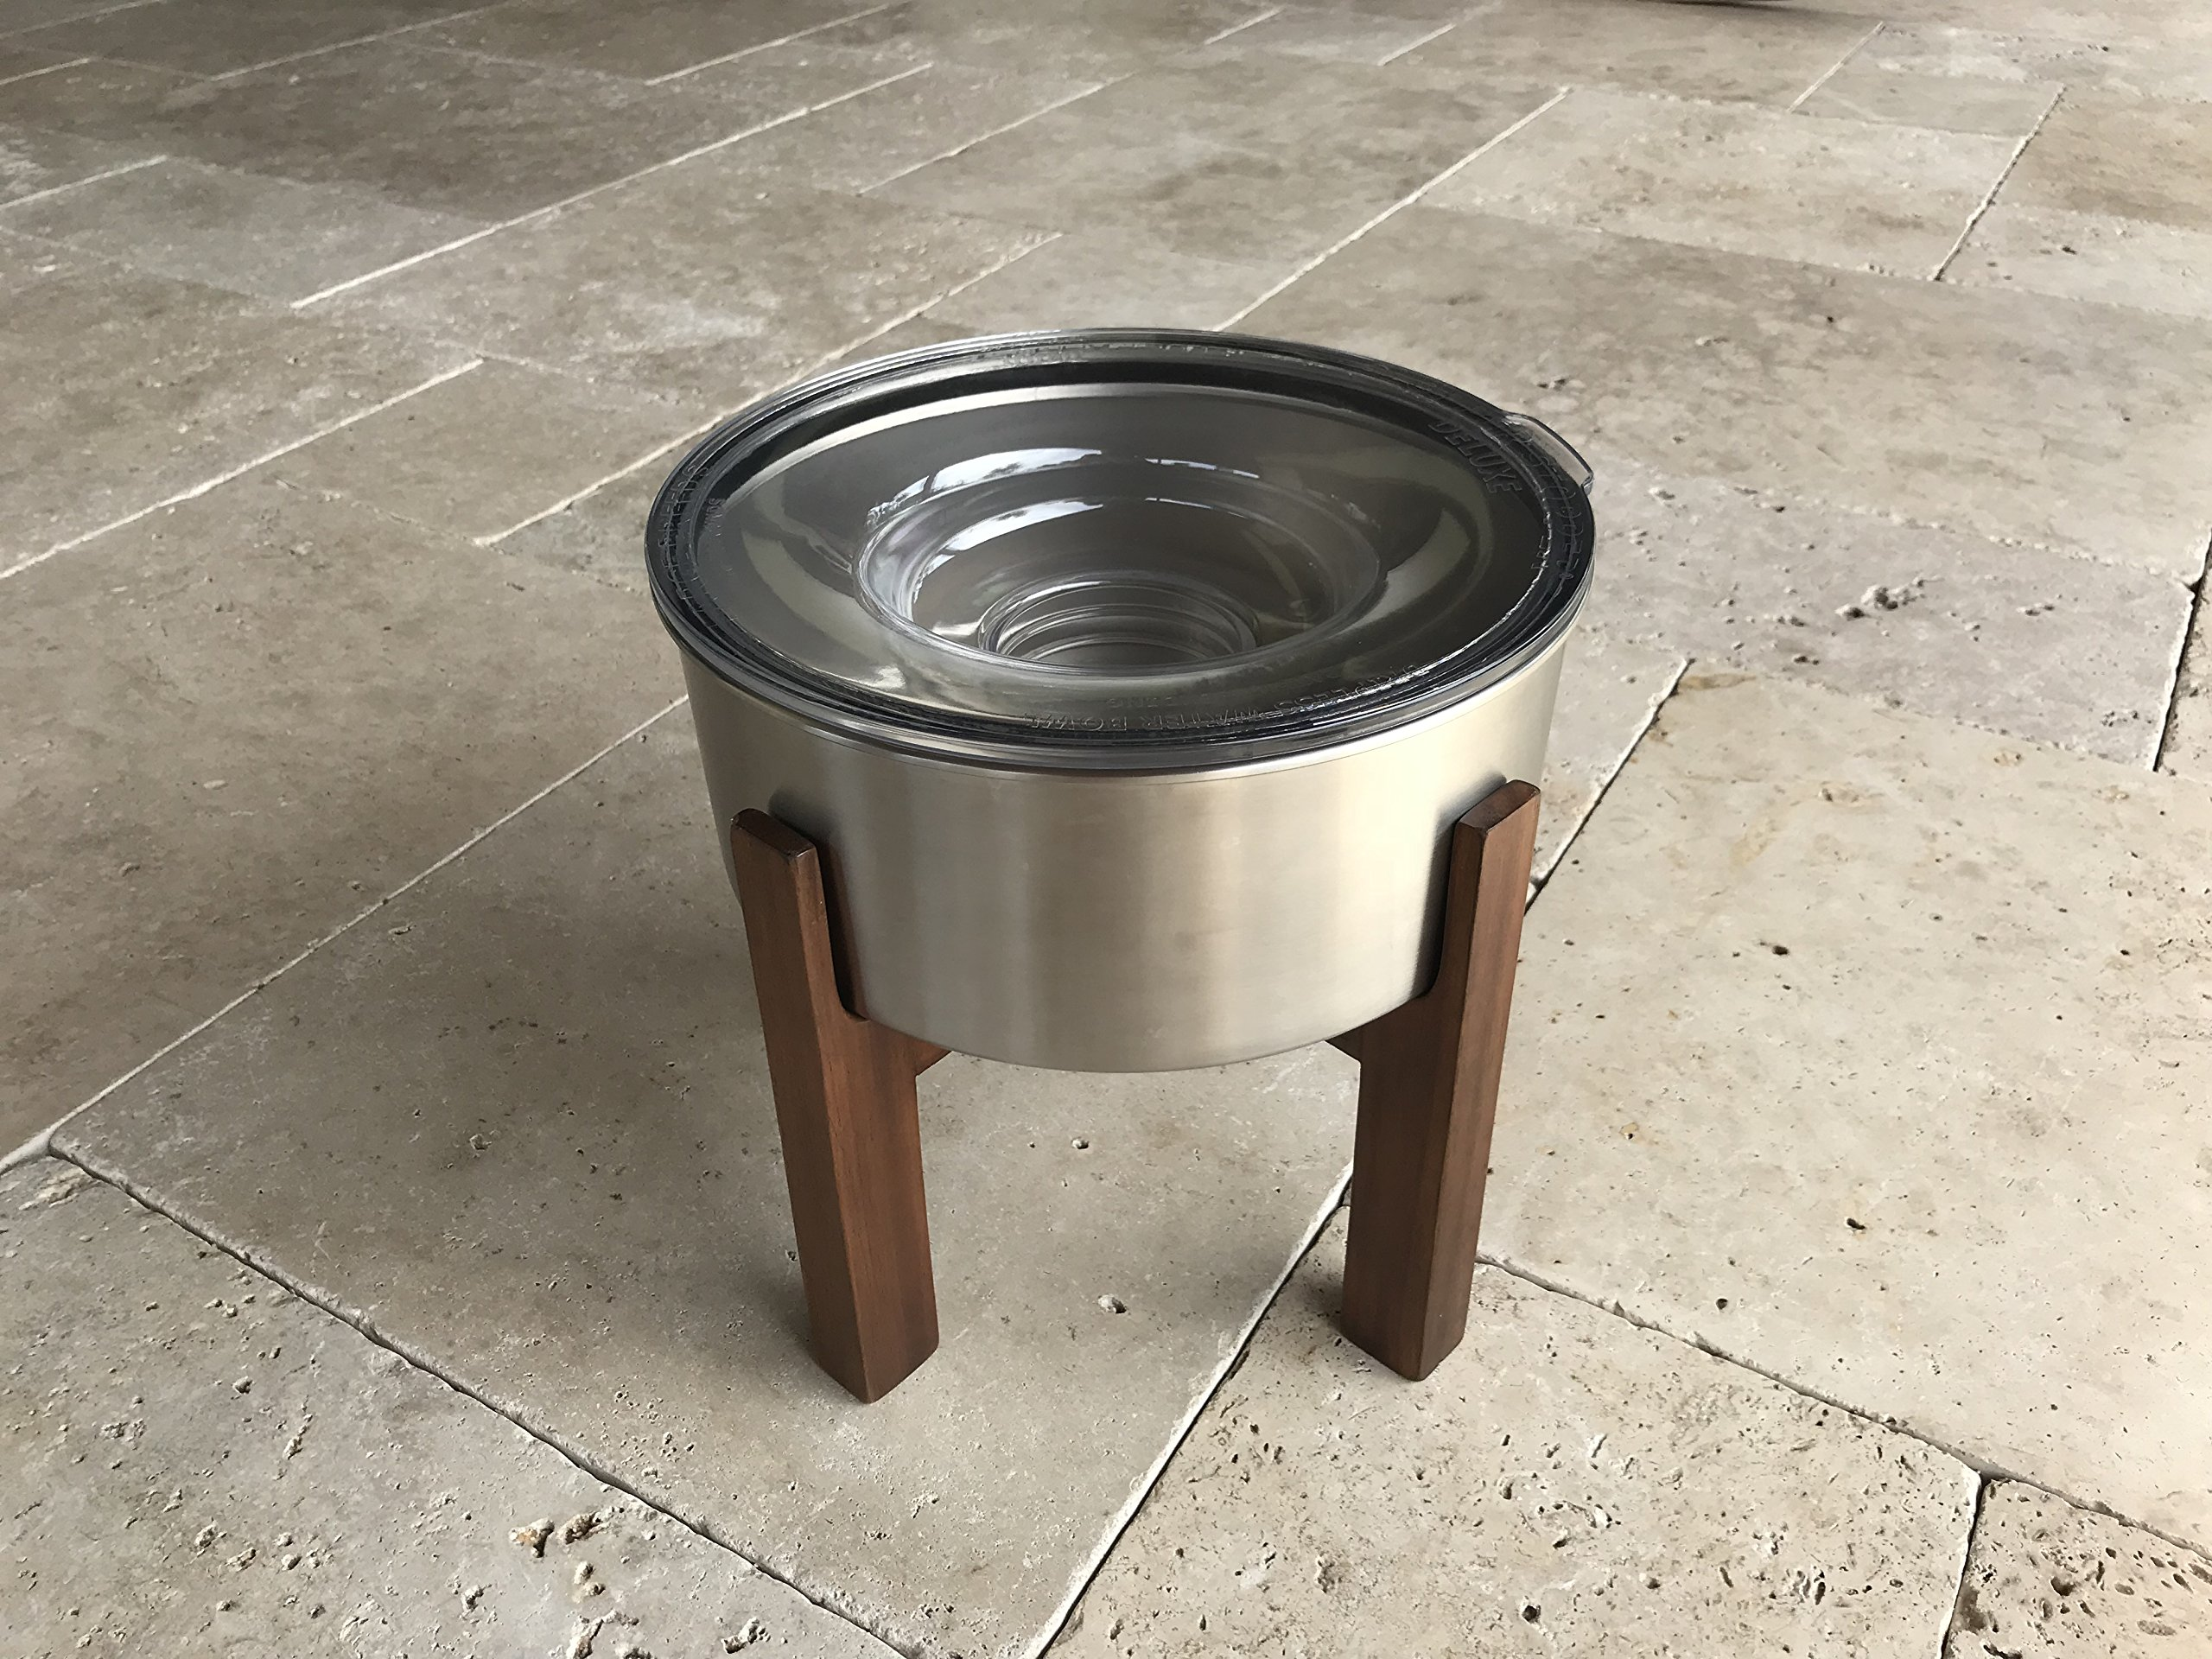 Slopper Stopper Dripless Dog Water Bowl - Large Breed Dogs 51-85 Lbs by Slopper Stopper (Image #9)